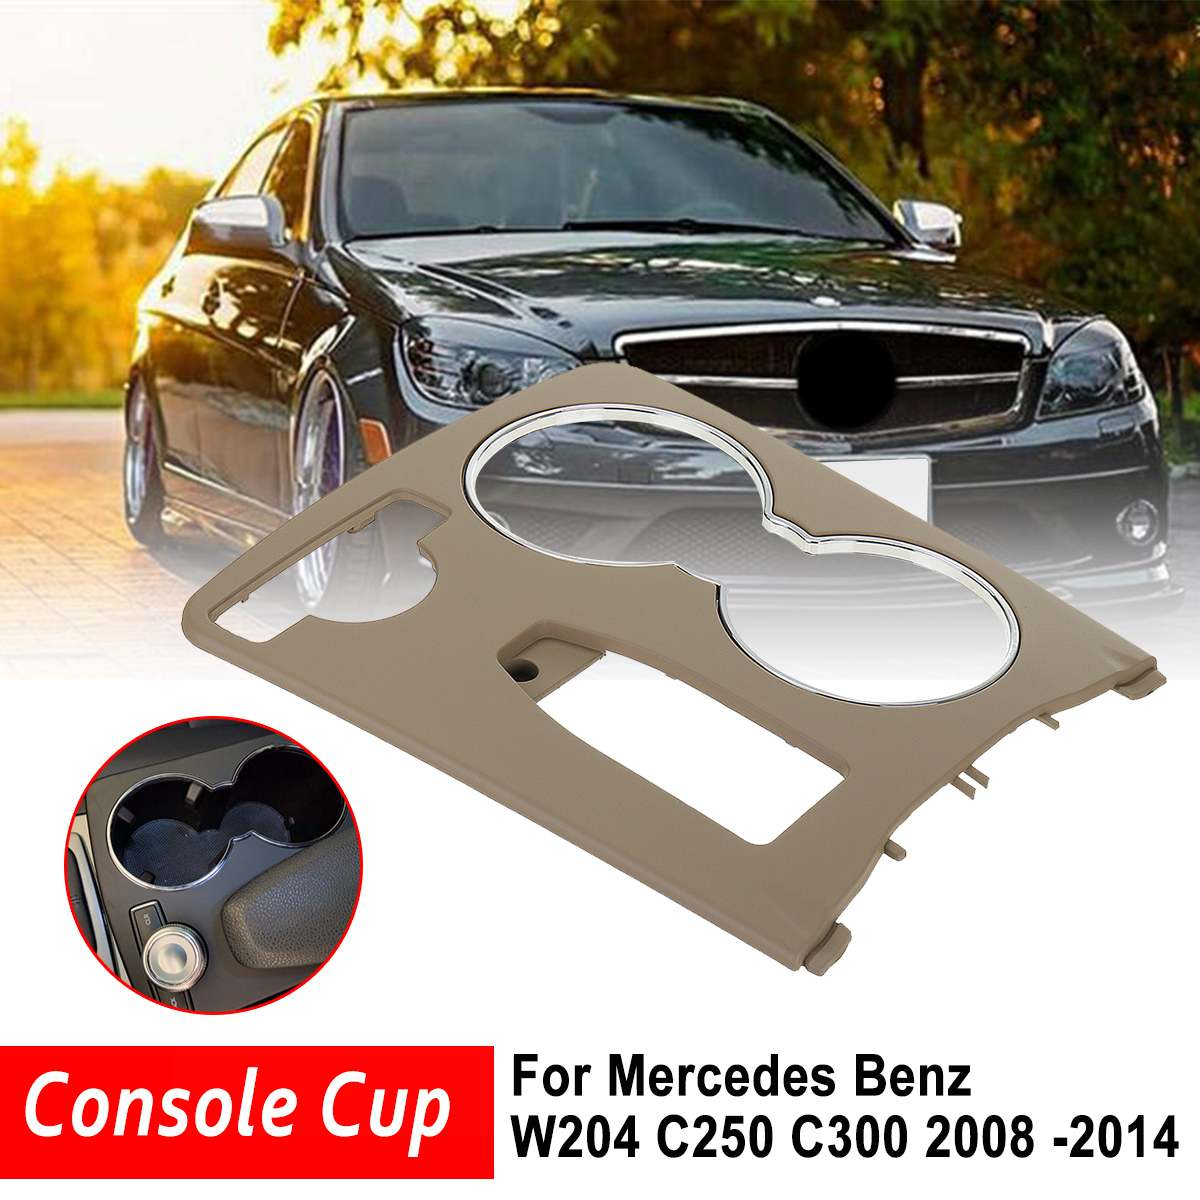 Genuine Center Console Cup Holder Trim Beige Cover For <font><b>Mercedes</b></font> For Benz GLK-Class W204 C250 <font><b>C300</b></font> C350 C63 2008 -2014 LHD Only image